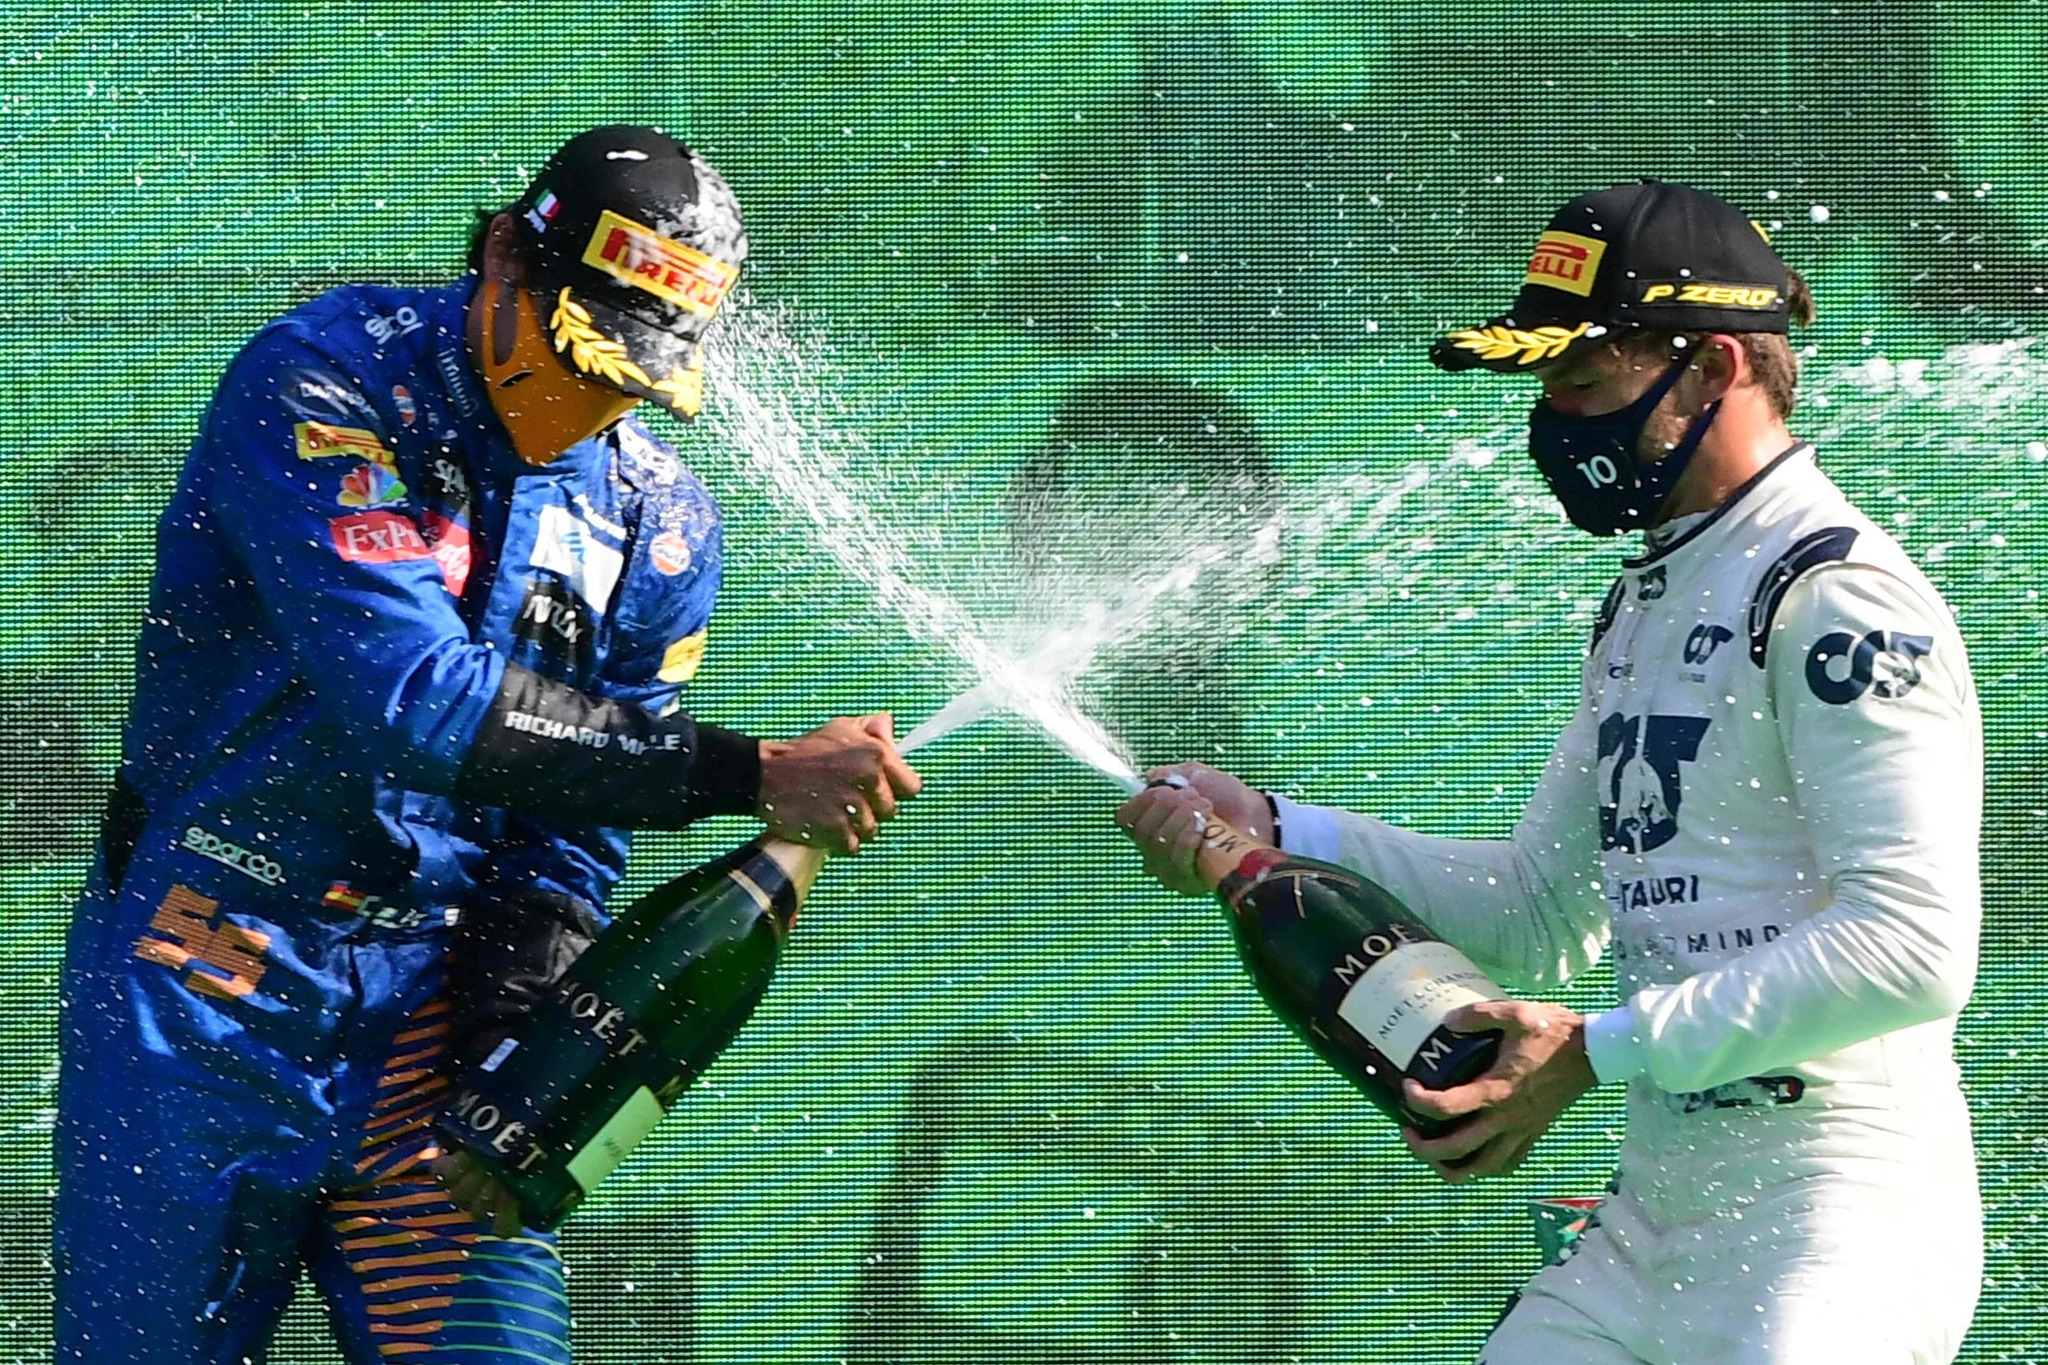 Winner AlphaTauris French driver Pierre Gasly (R) sprays champagne as he celebrates with second placed McLarens Spanish driver Carlos lt;HIT gt;Sainz lt;/HIT gt; Jr on the podium after the Italian Formula One Grand Prix at the Autodromo Nazionale circuit in Monza on September 6, 2020. (Photo by JENNIFER LORENZINI / POOL / AFP)